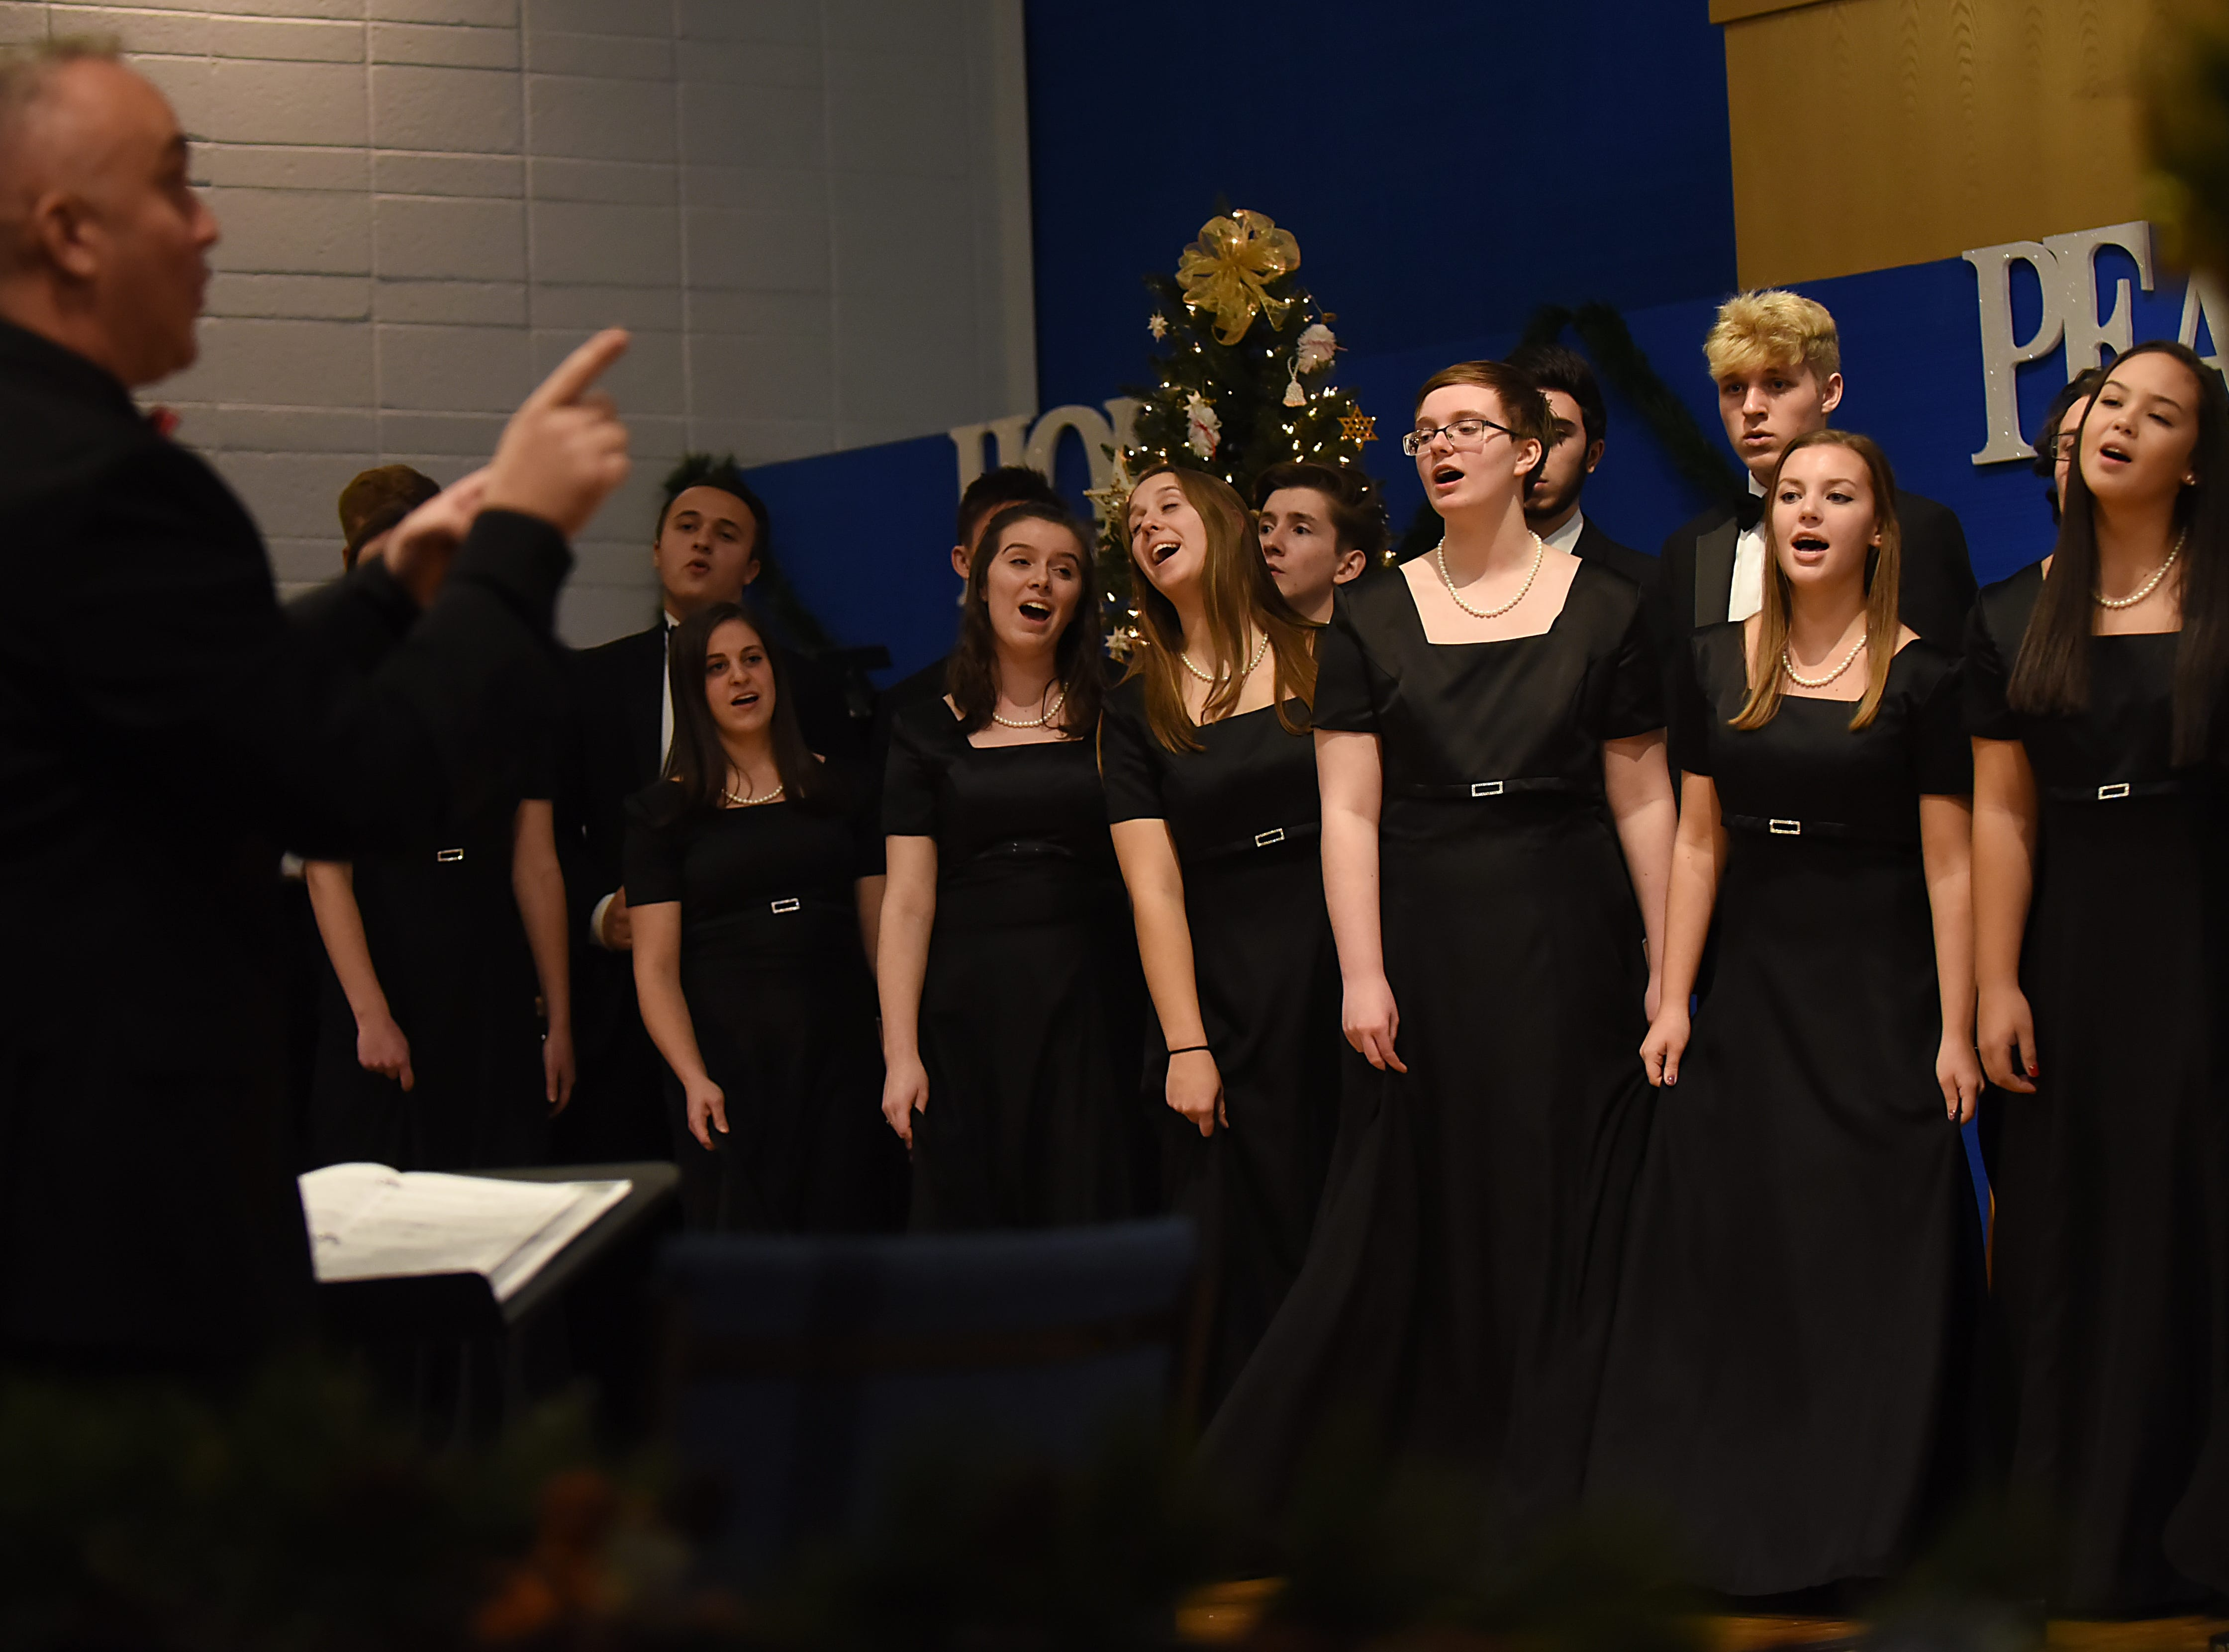 Michael Semancik leads the Morris Knolls Madrigal Choir during a dress rehearsal at Denville Community Church in Denville on Thursday November 29, 2018 prior to their performance at the White House.